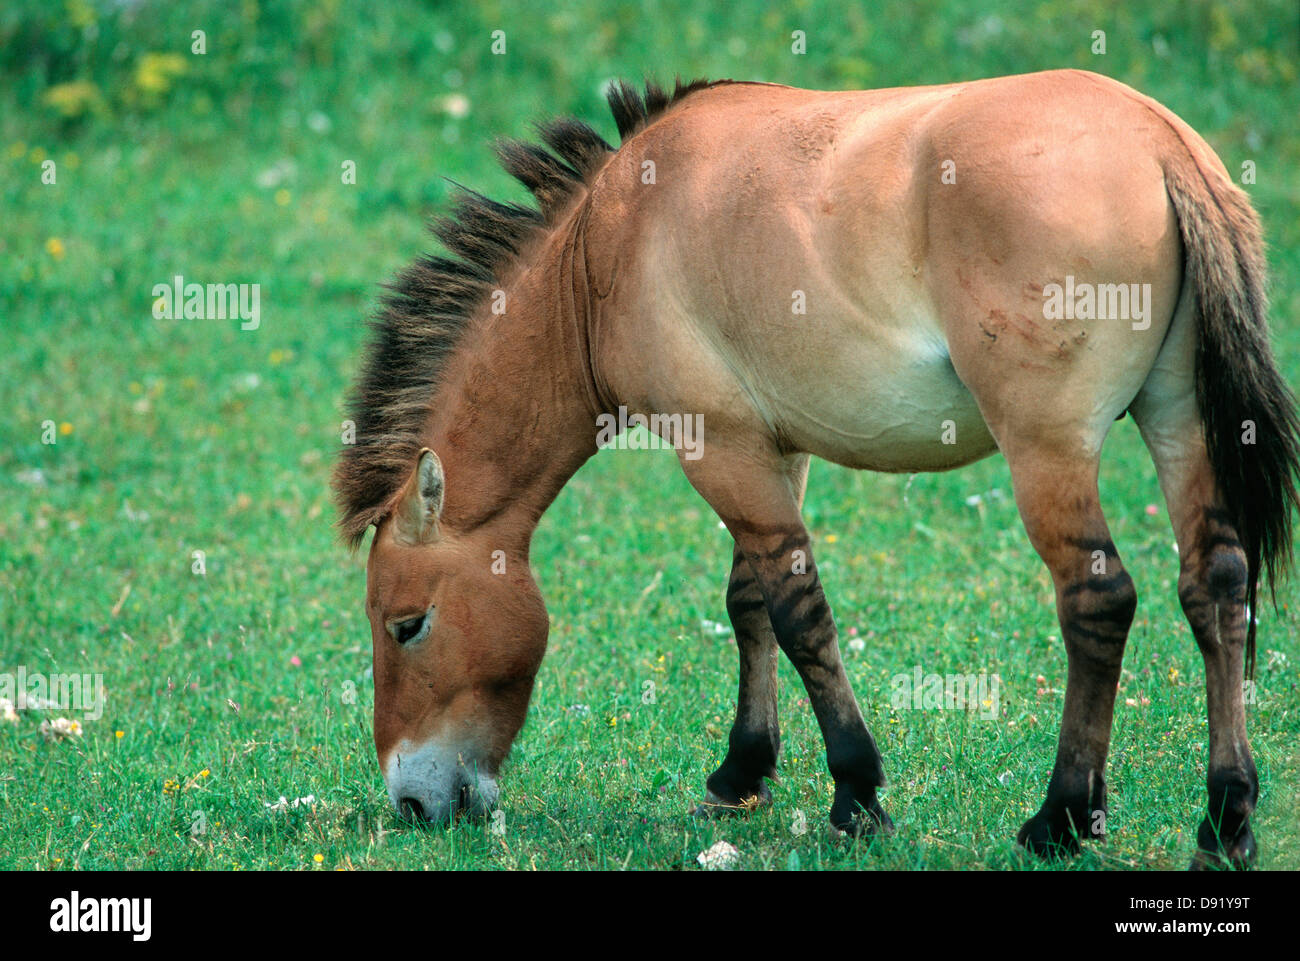 Przewalski's horses - showing the zebra striped legs Stock Photo